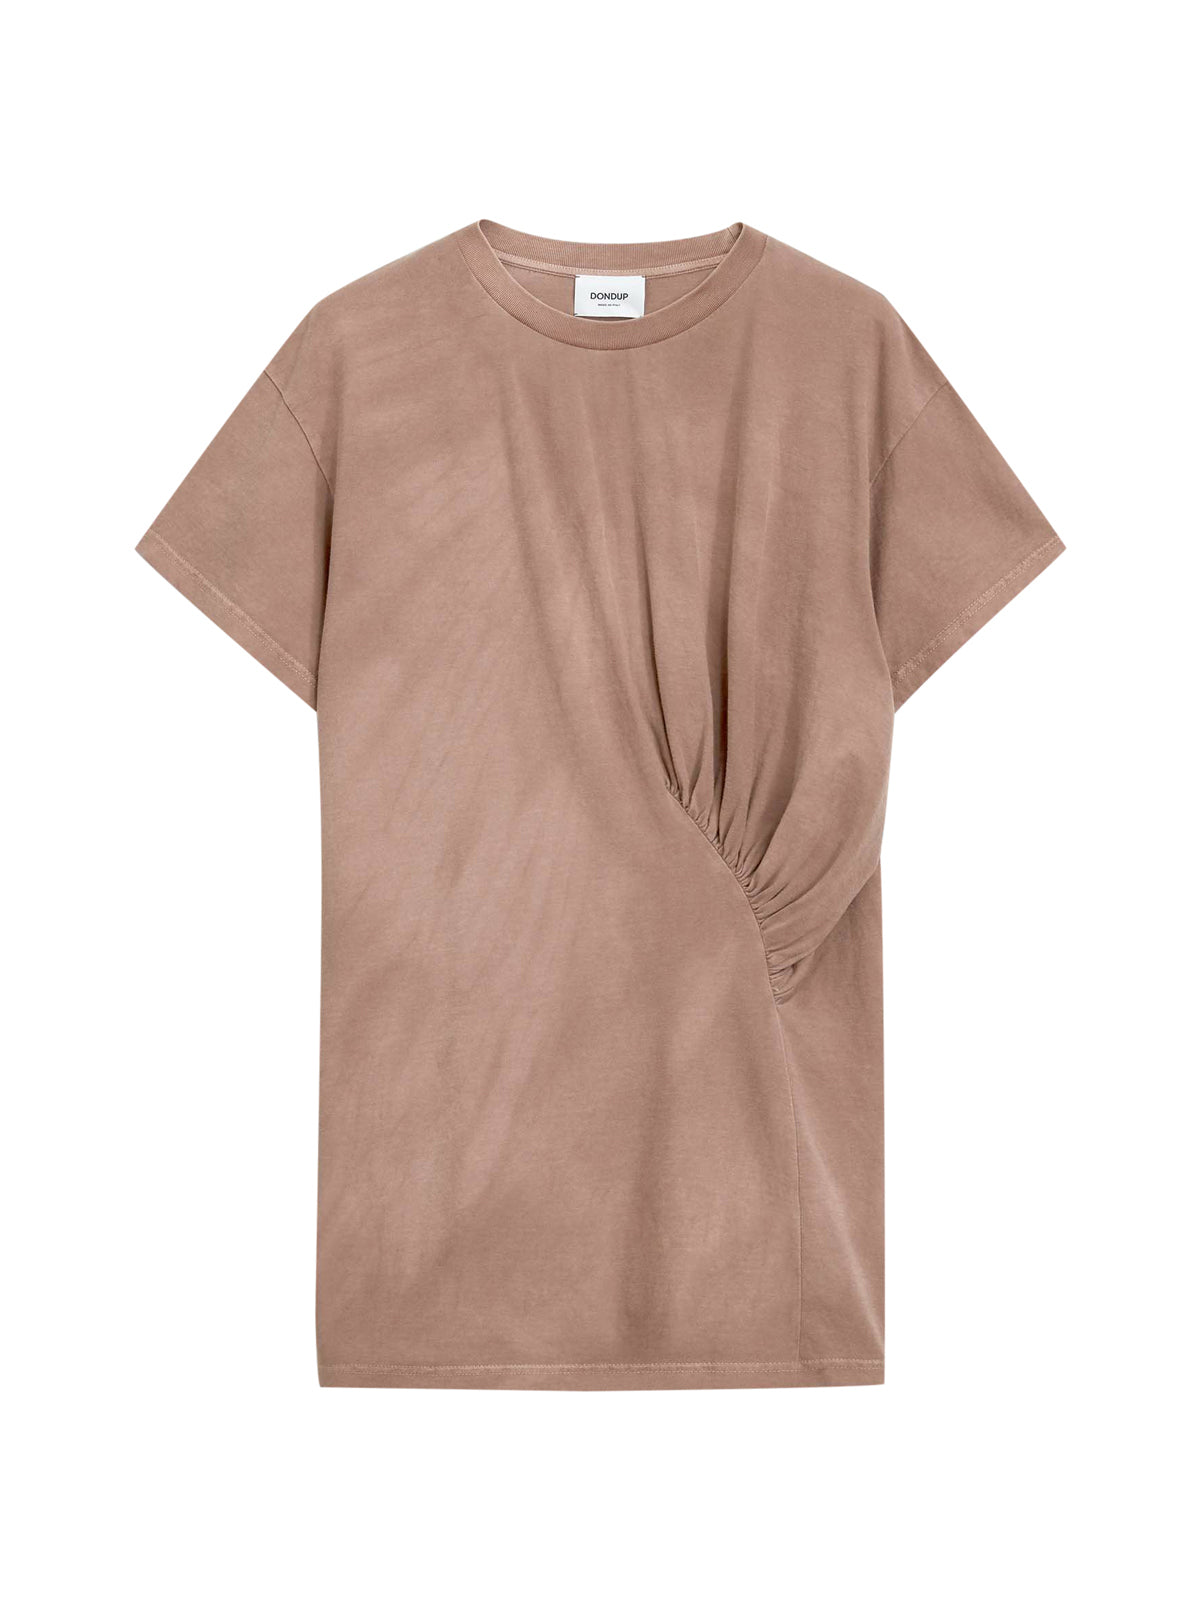 TSHIRT WITH DRAPING